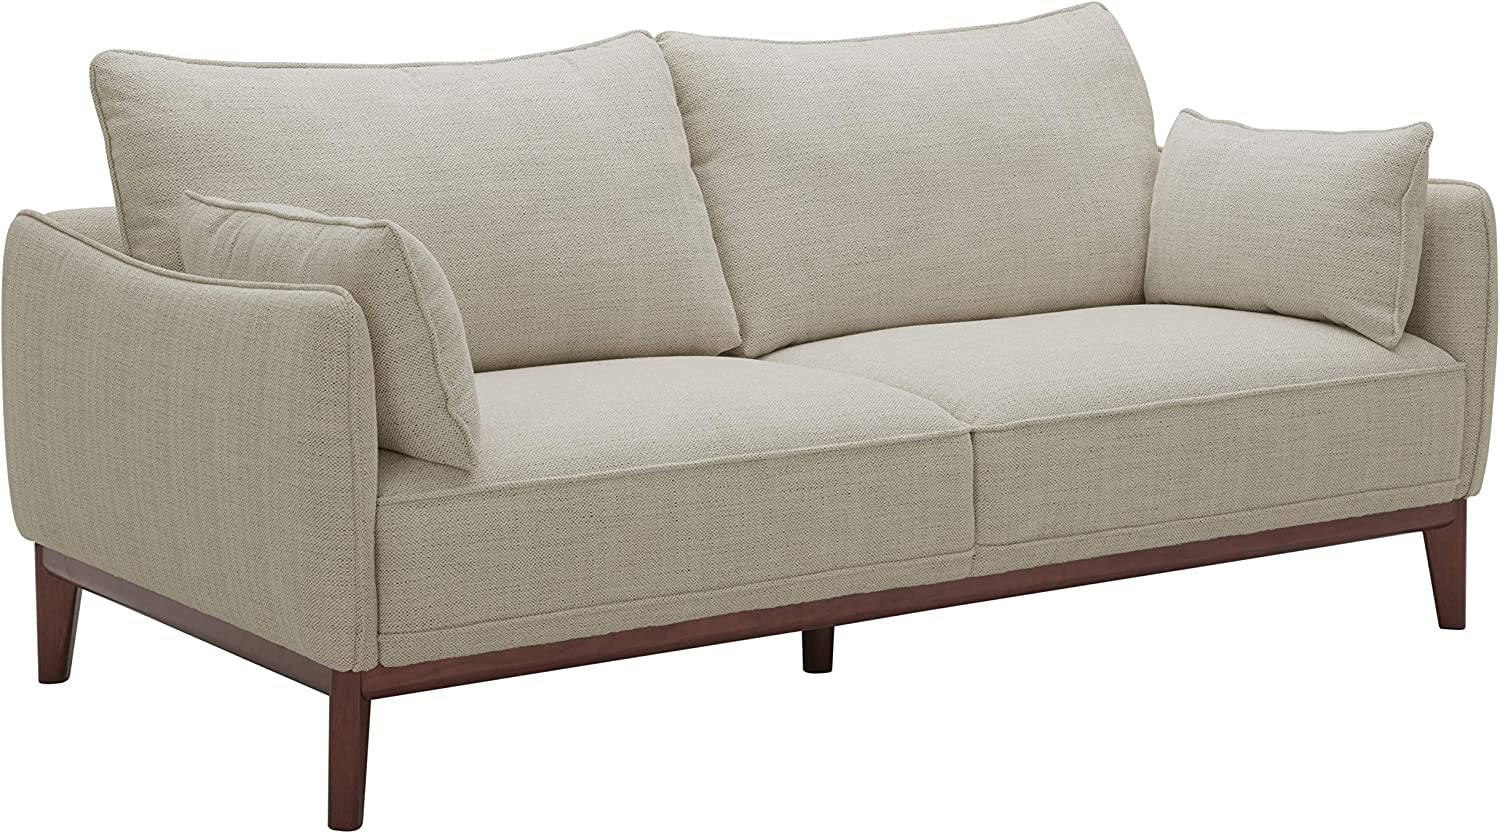 Amazon Brand – Stone & Beam Hillman Mid-Century Sofa with Tapered Legs and Removable Cushions, 78